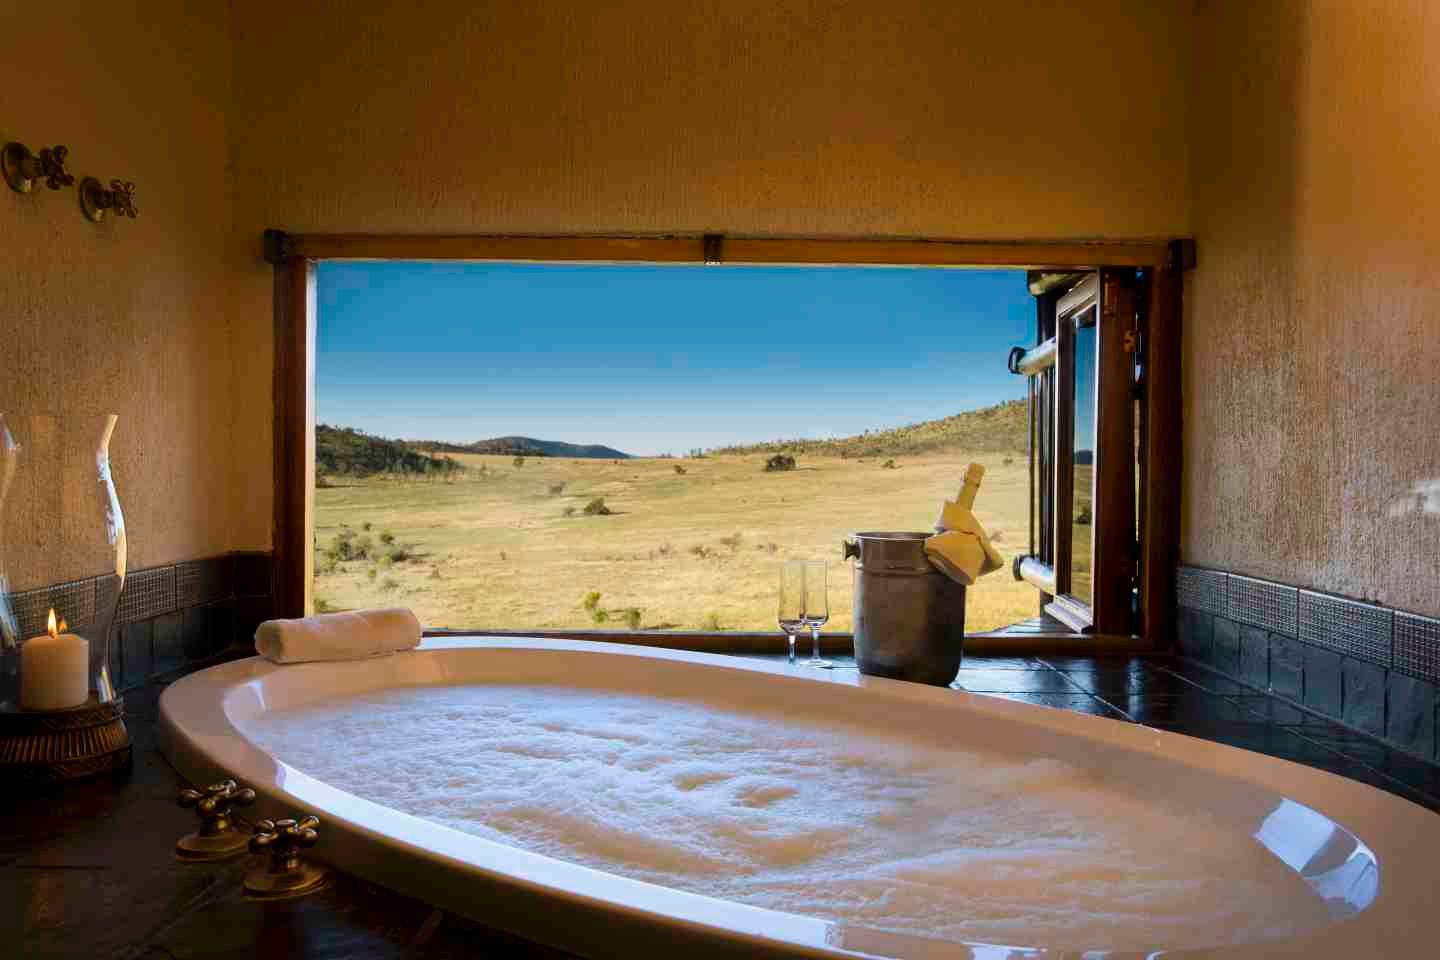 Tshukudu Bush Lodge Pilanesberg National Park South Africa